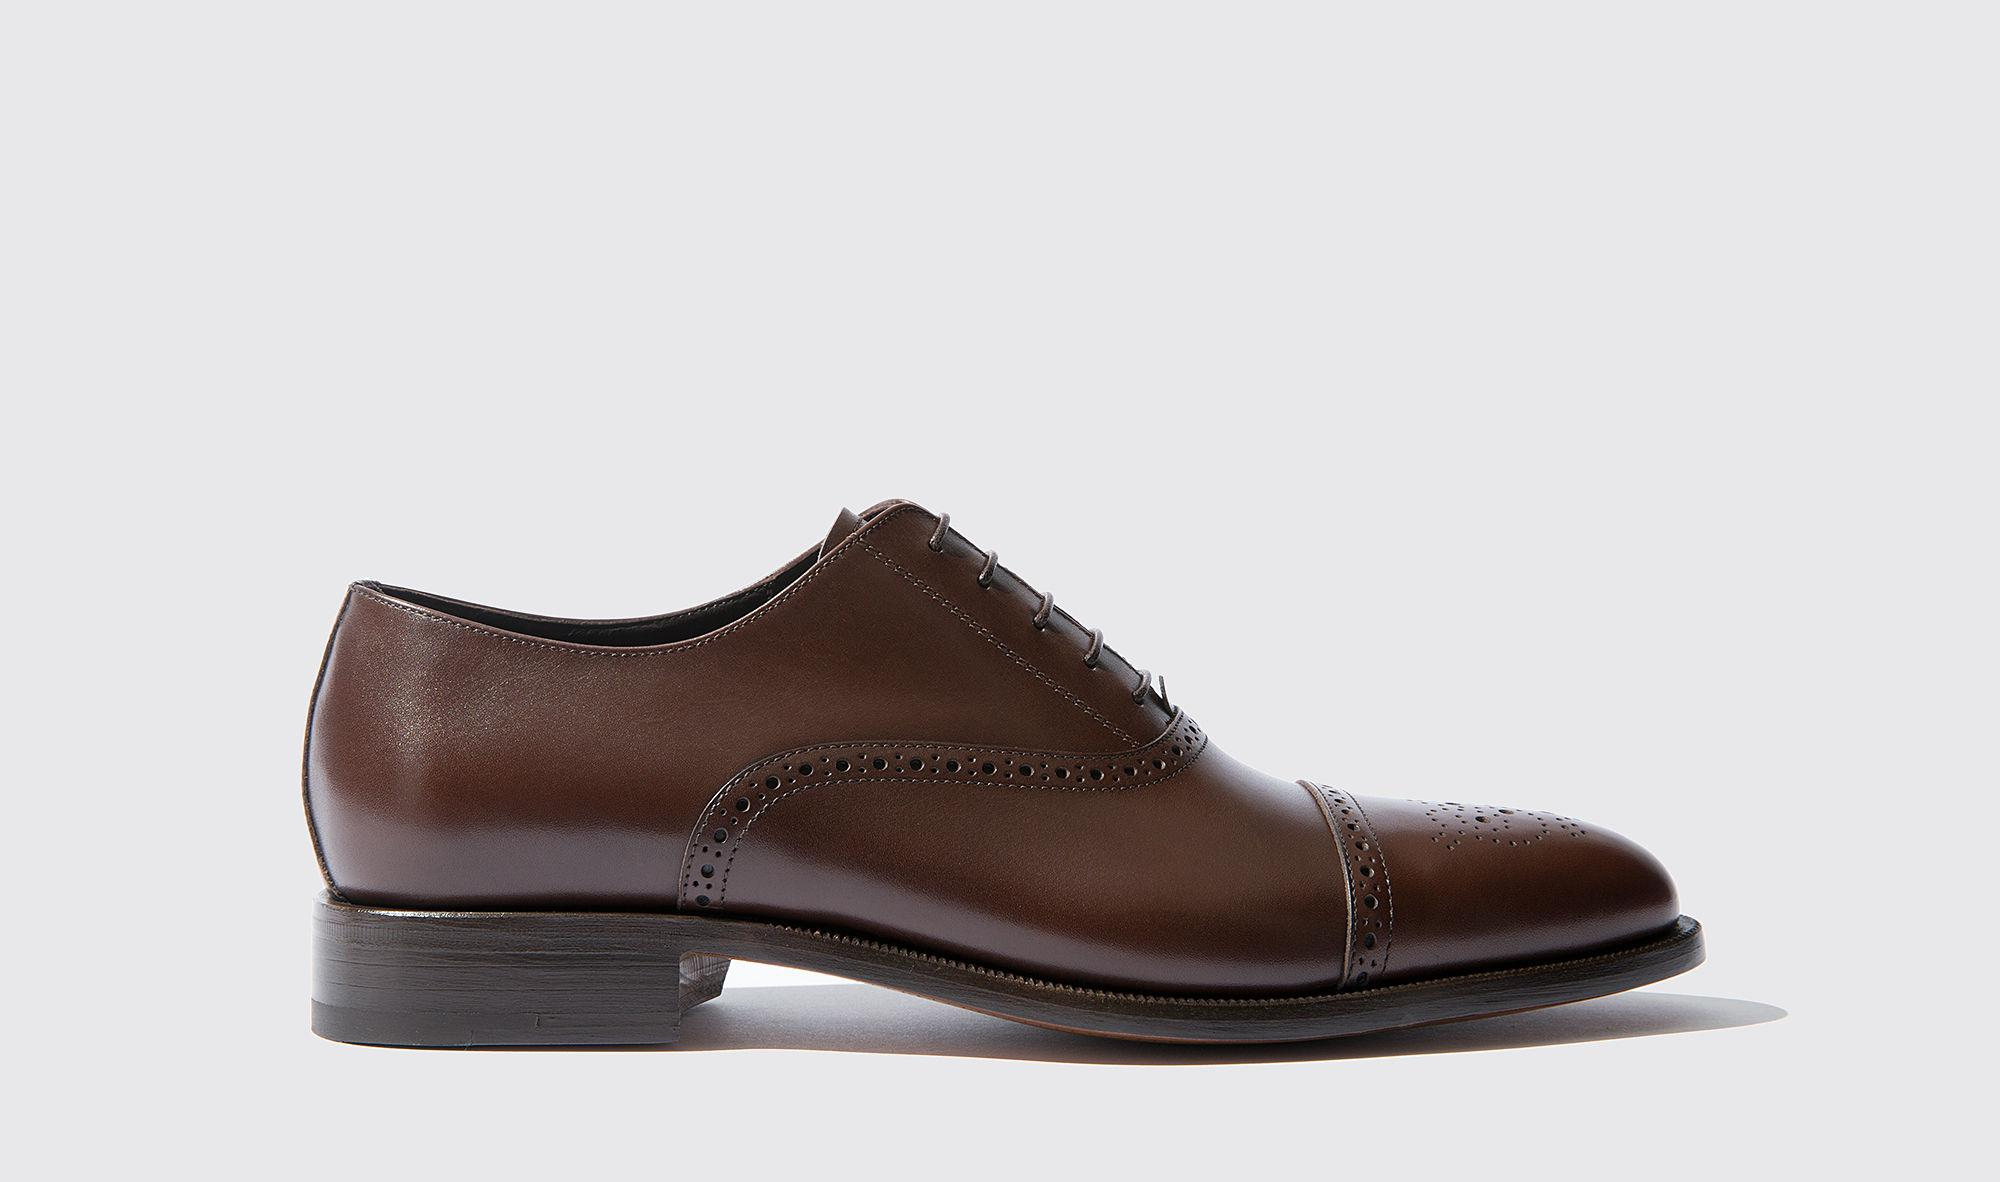 Scarosso Oxfords Fiorenza Nera Outlet Hot Sale Buy Cheap Low Shipping Fee Sast Huge Surprise For Sale Original 3mR70